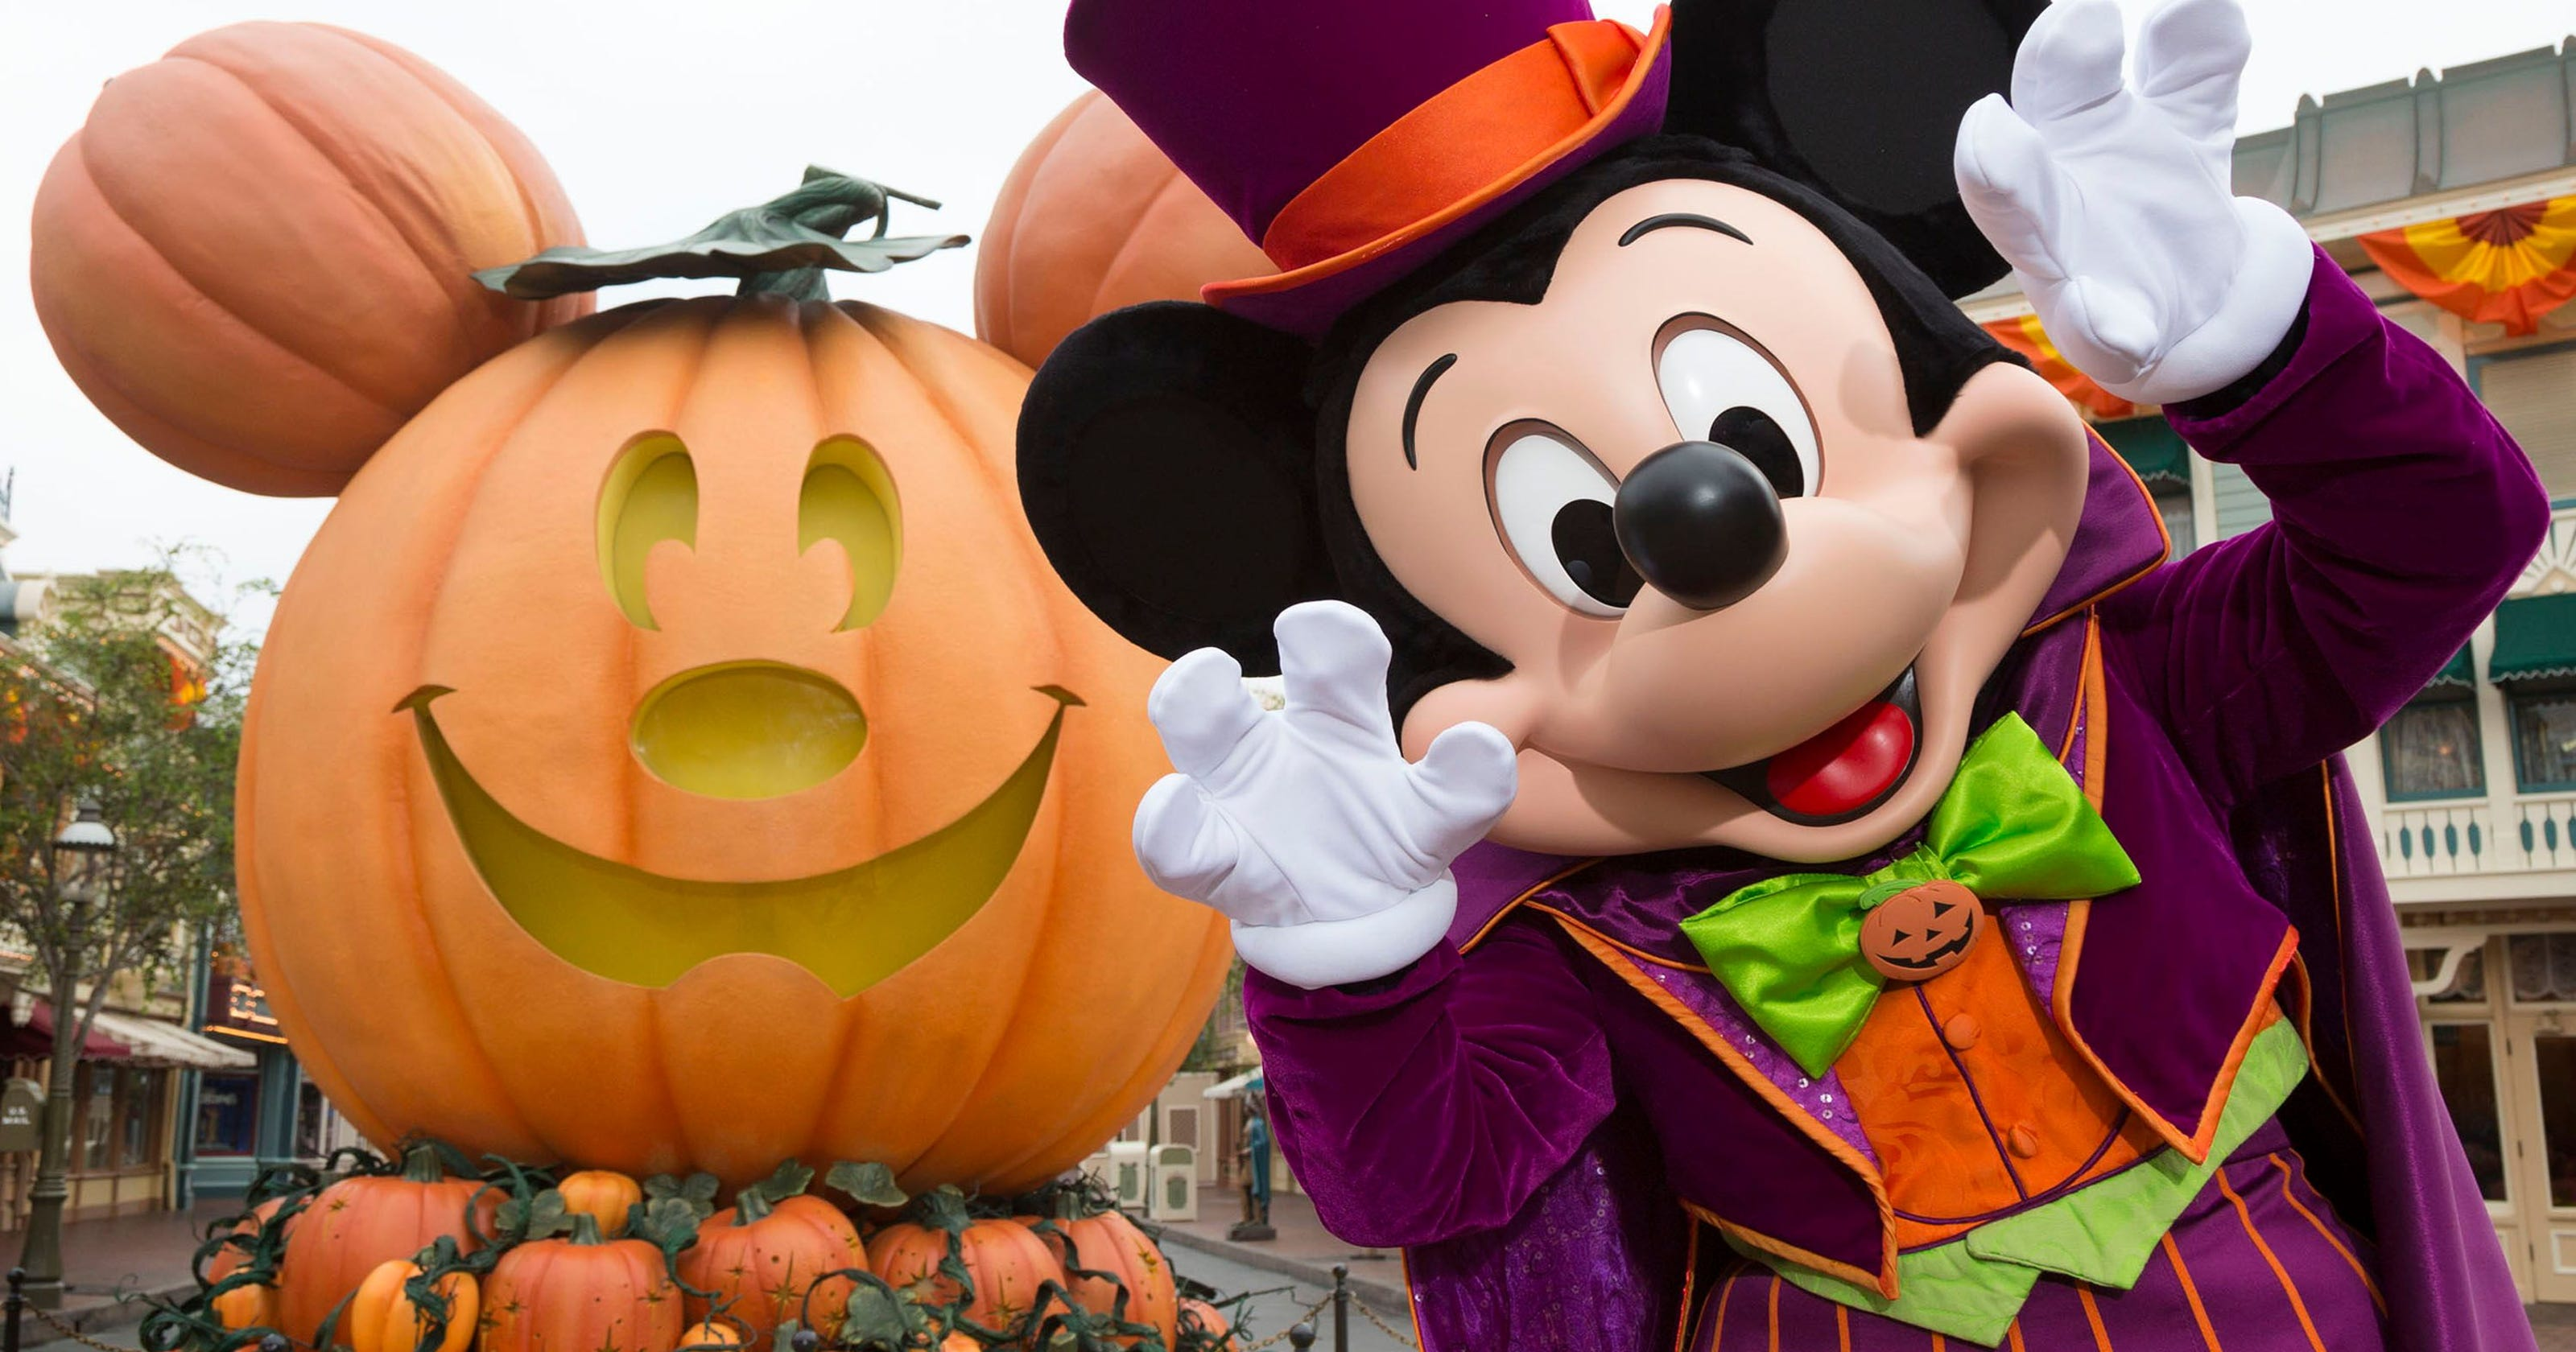 tickets for mickeys halloween party 2018 at disneyland go on sale 65